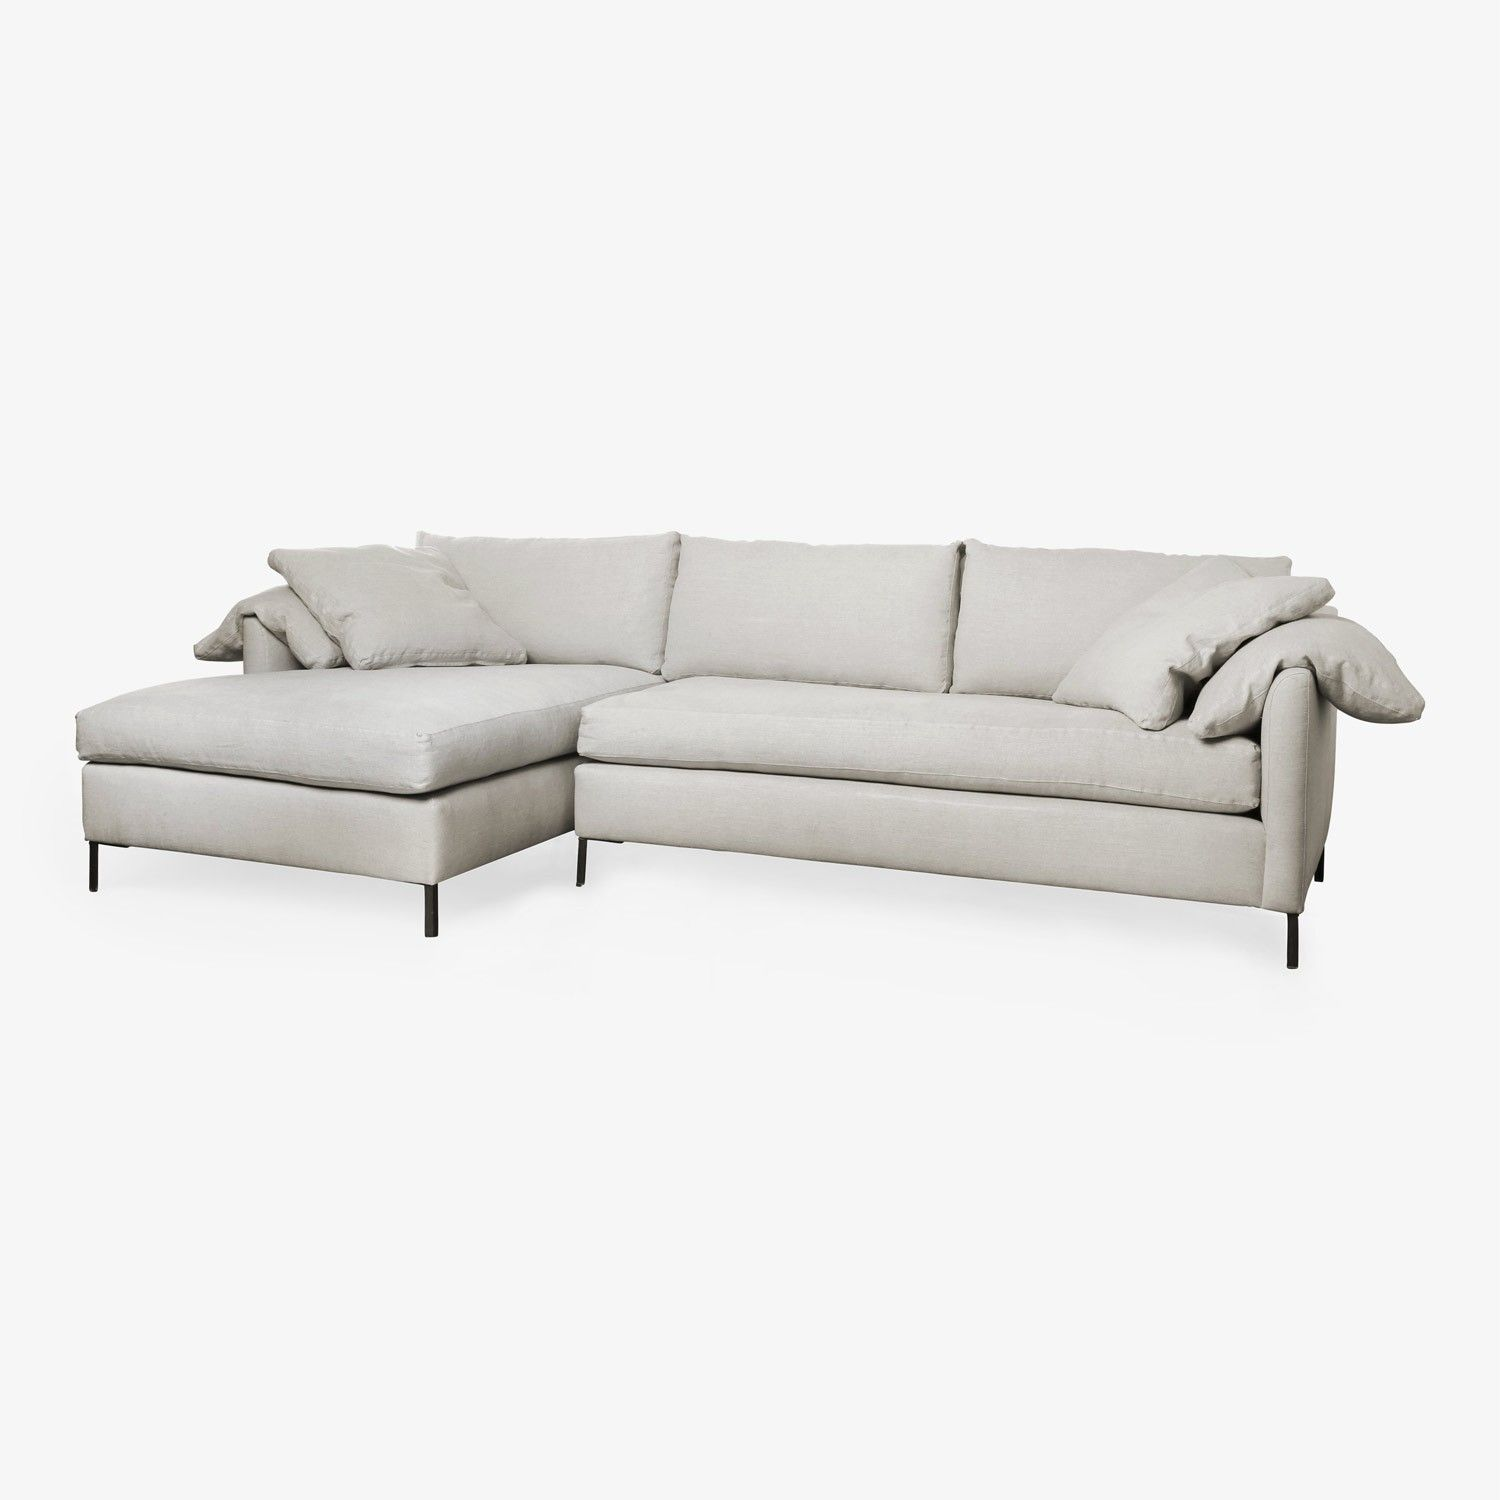 Cisco Pure Radley Sofa Left Arm Chaise Sectional In 2020 Modern